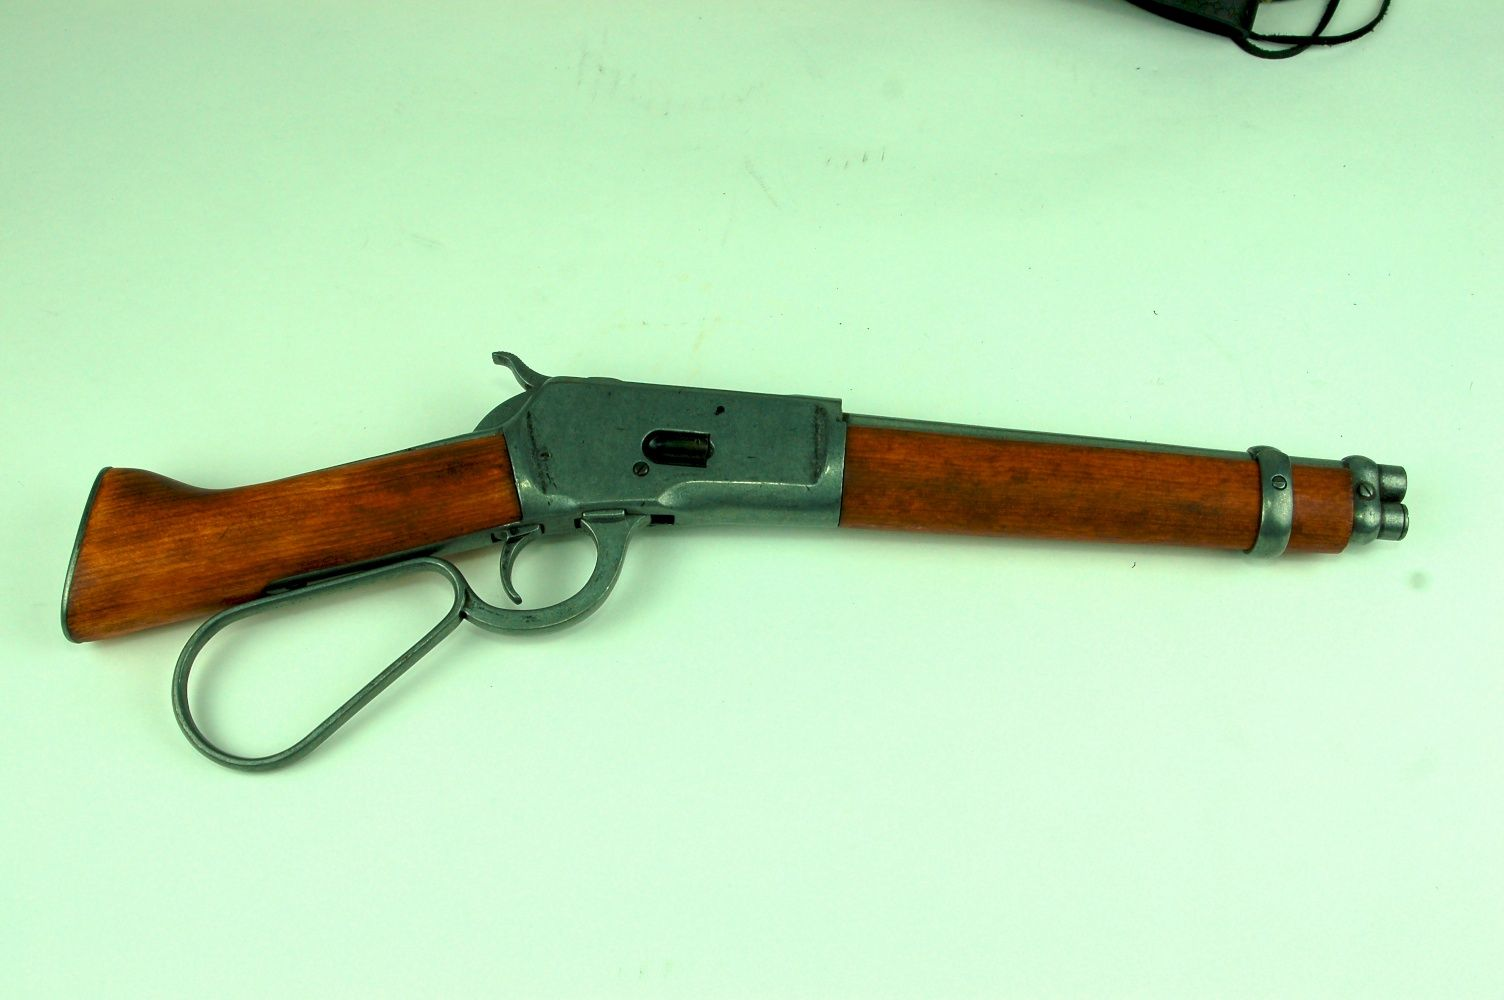 gun used in wanted dead or alive